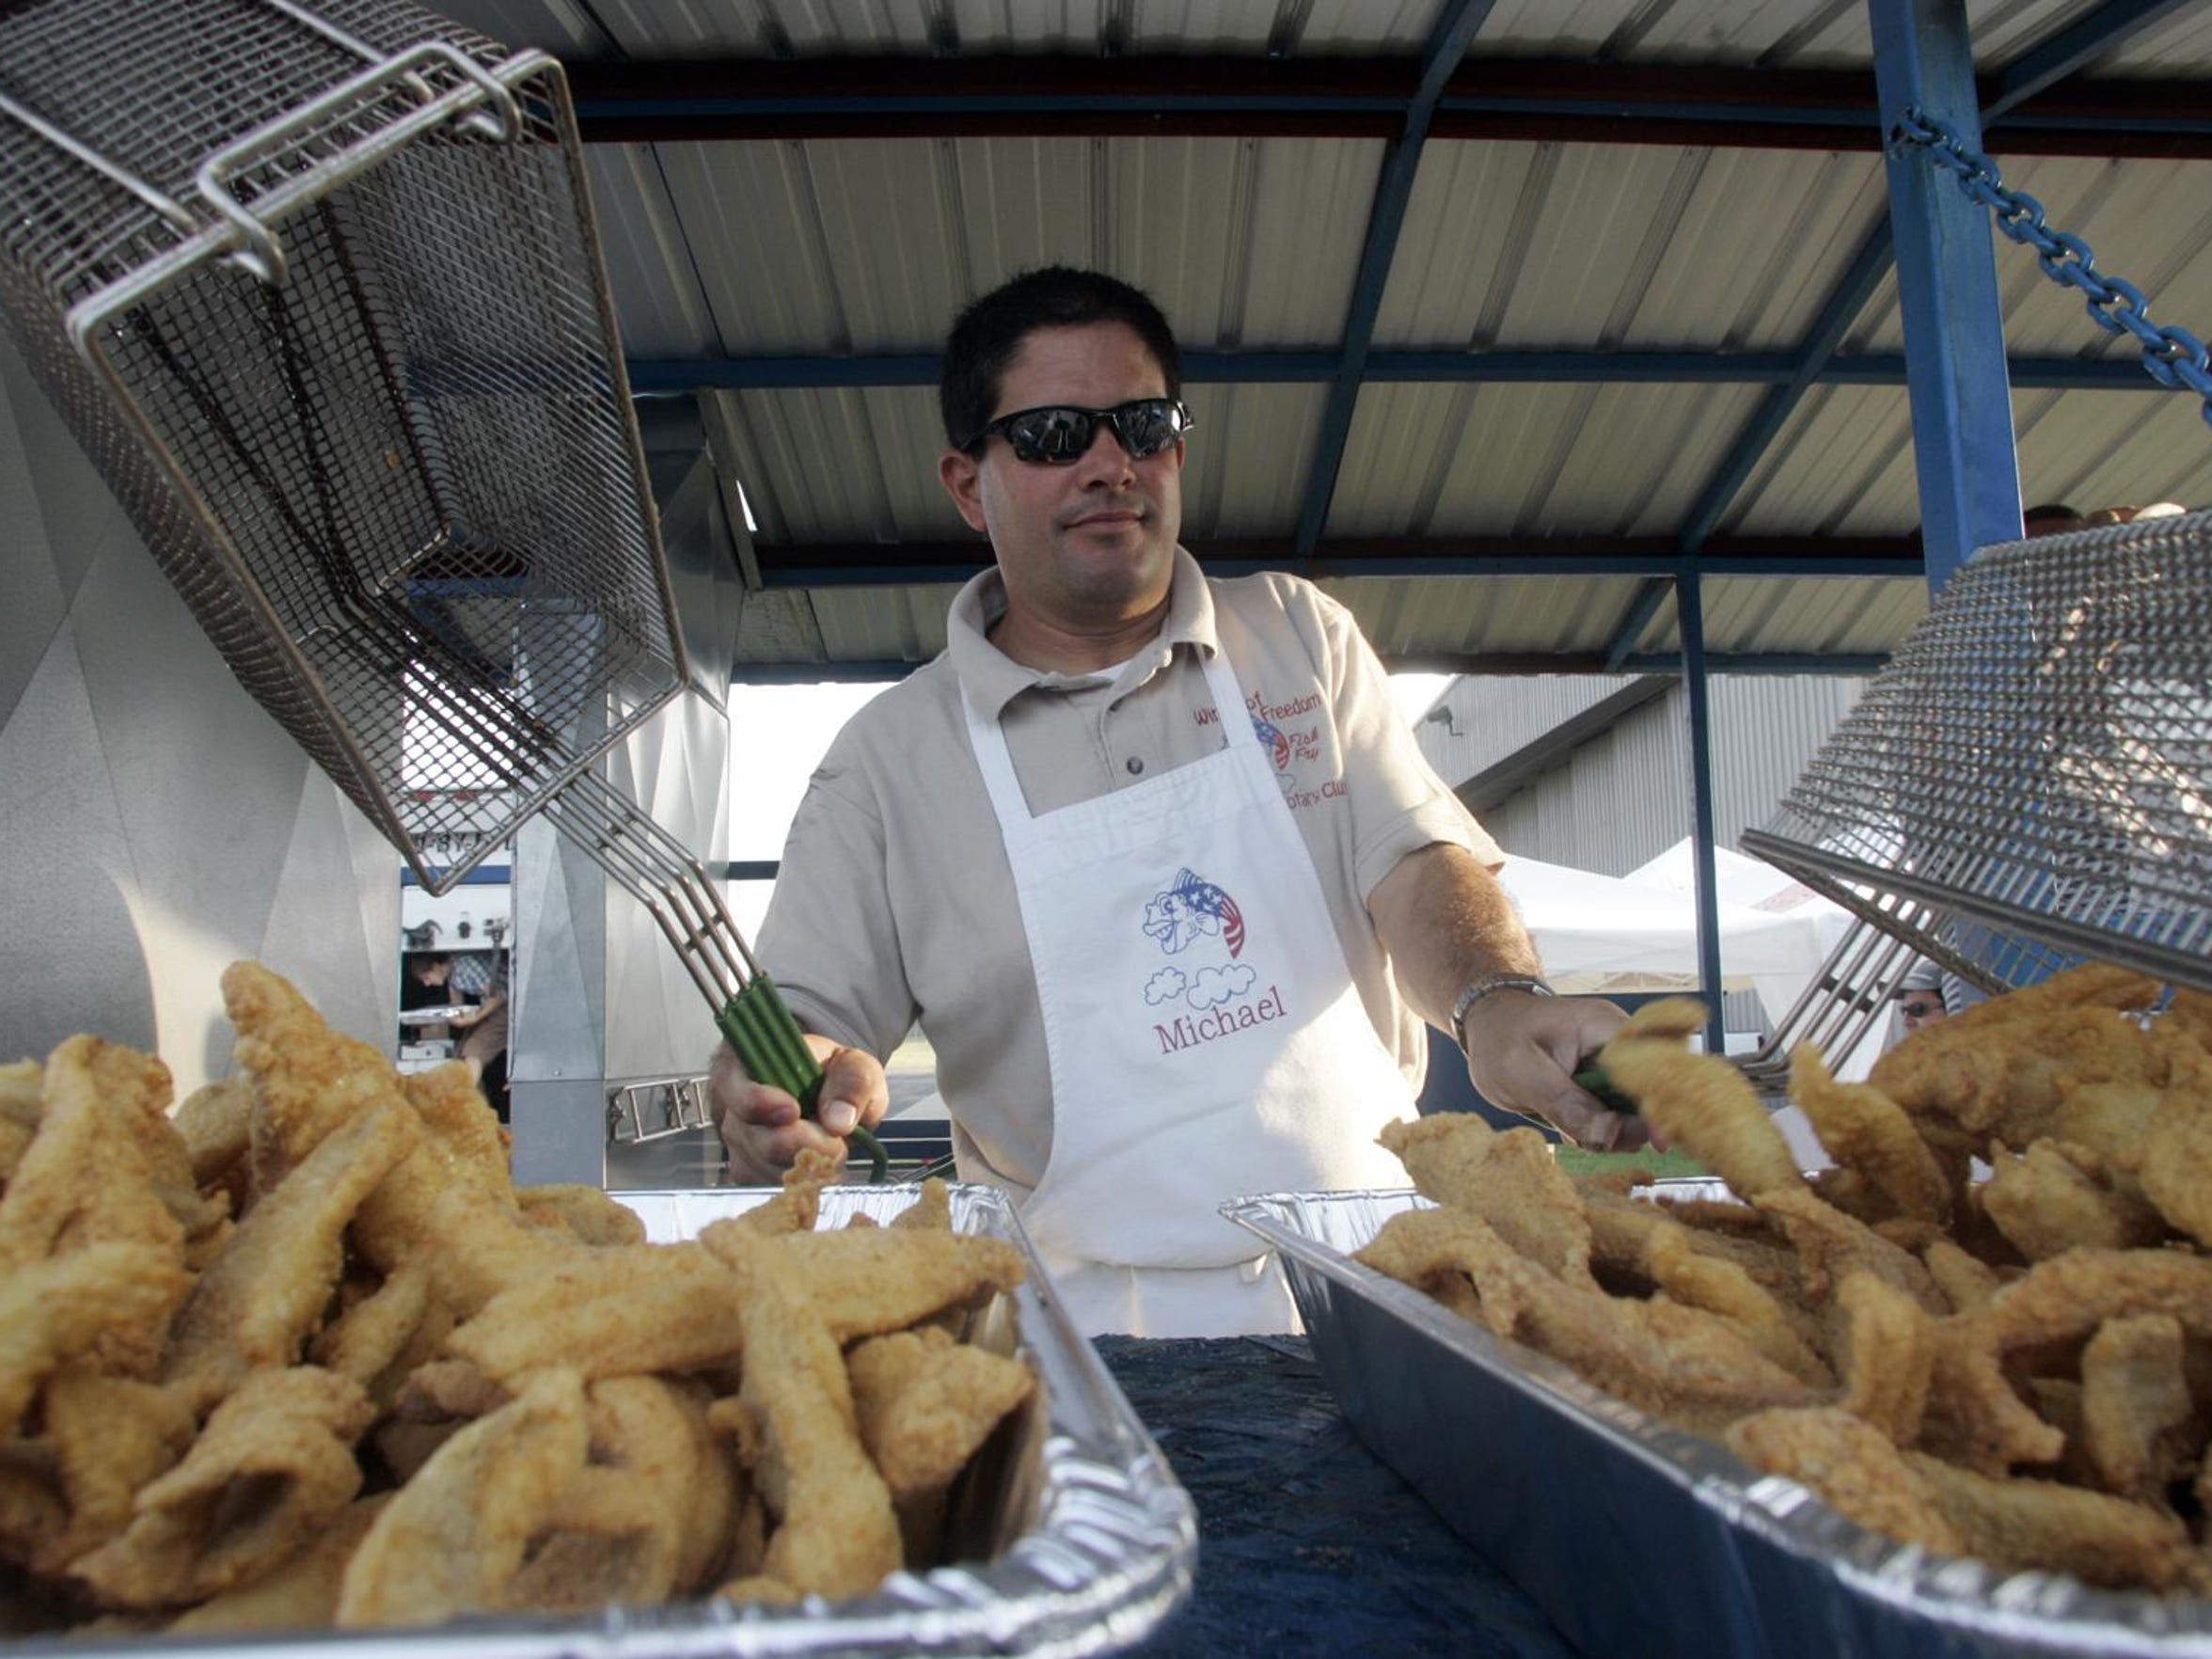 Michael Intorcia fills a tray with fried fish at a previous Smyrna Rotary Club Wings of Freedom Fish Fry at Smyrna Airport.